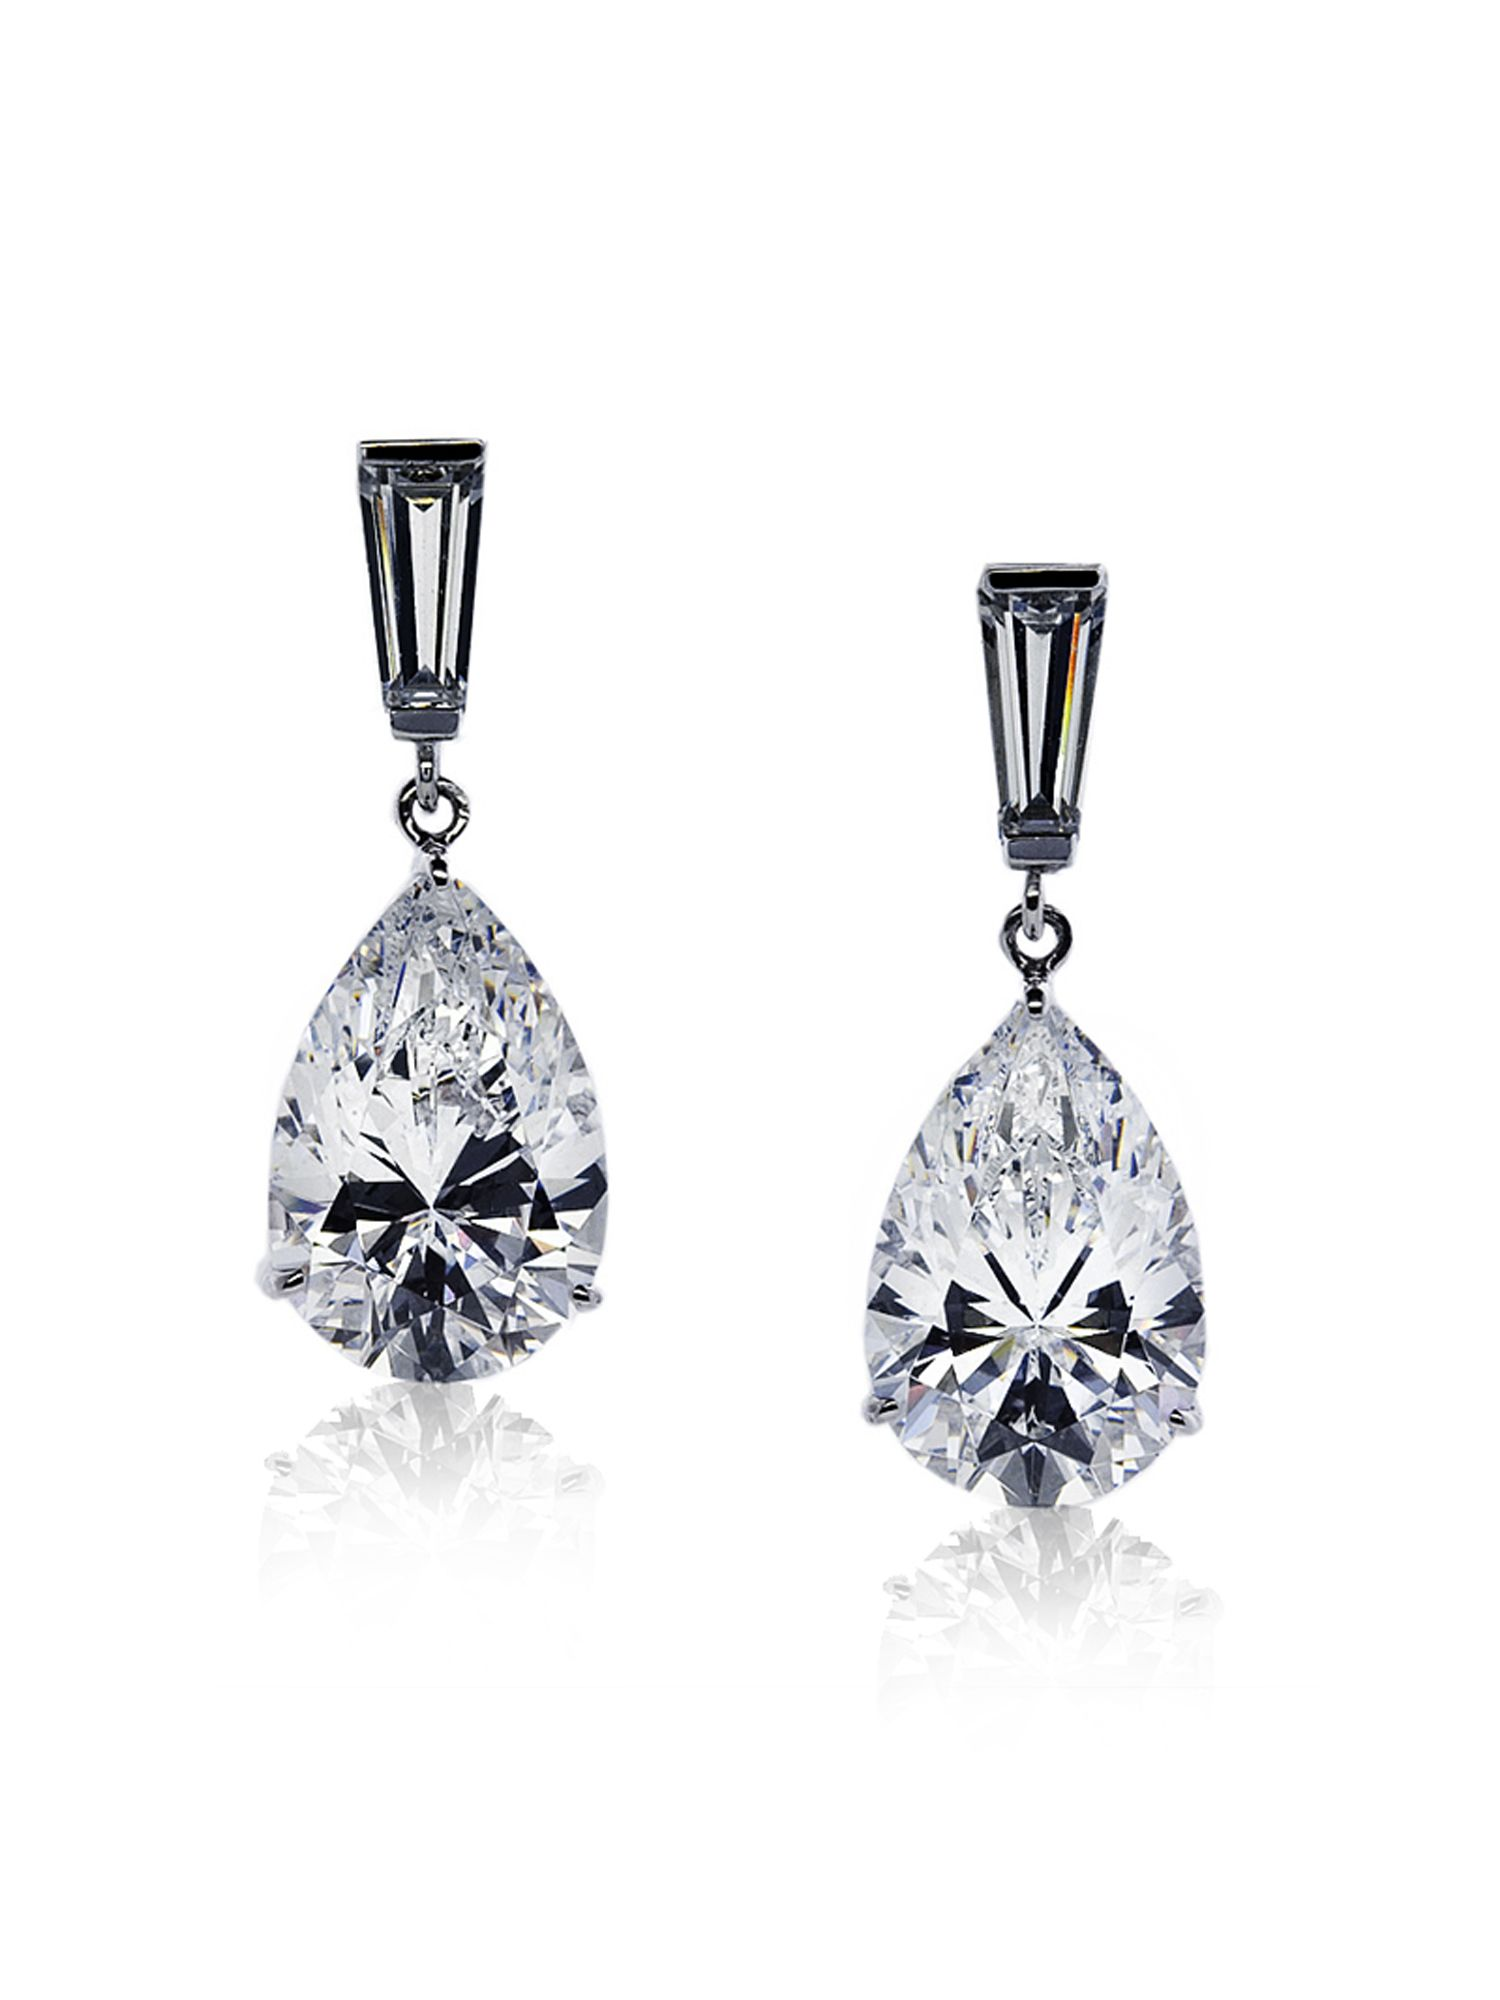 2ct Baguette Pear Drop Earrings